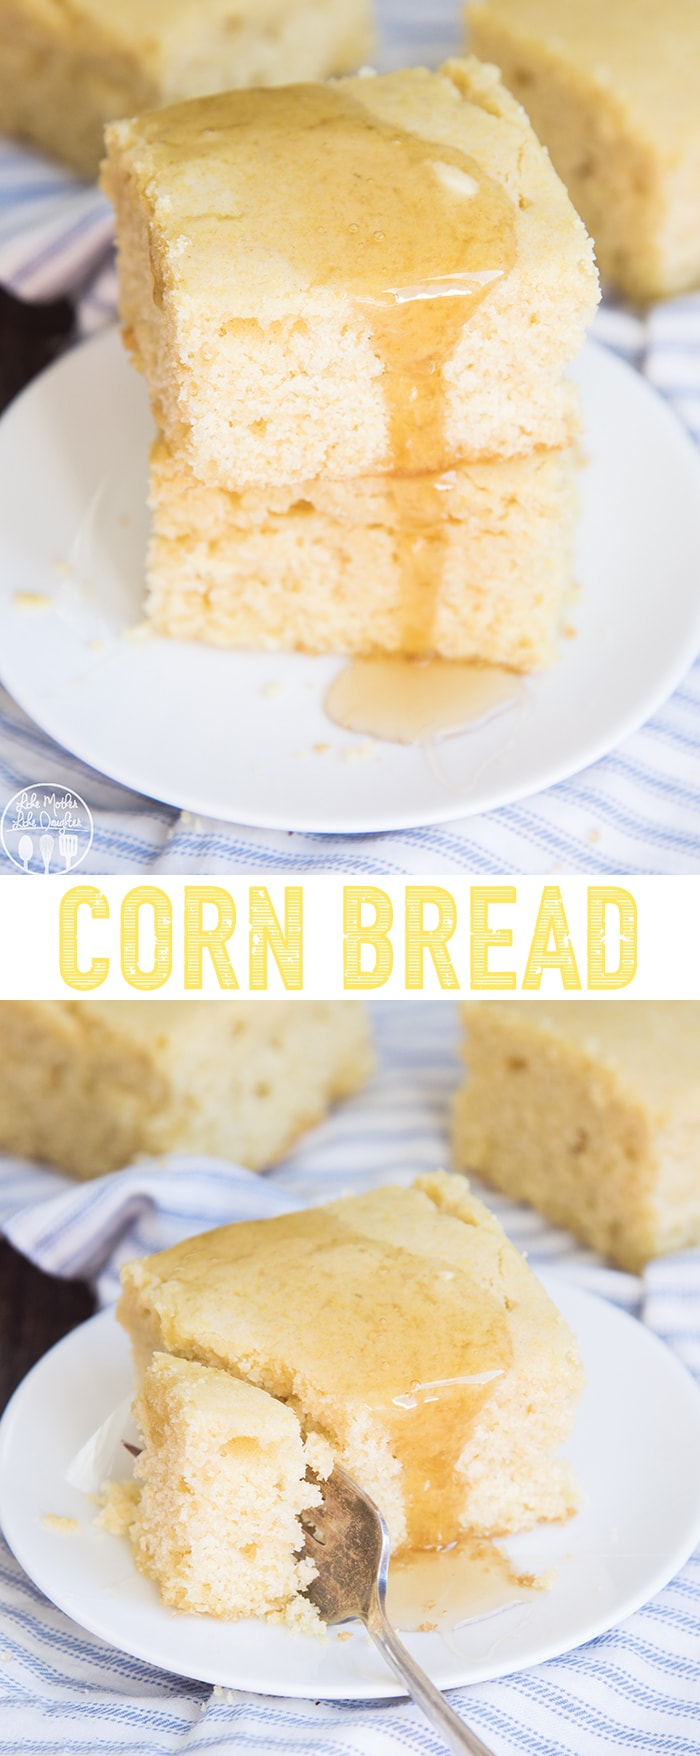 This sweet corn bread is a perfect soft, moist and fluffy corn bread, that can be made in just 30 minutes!